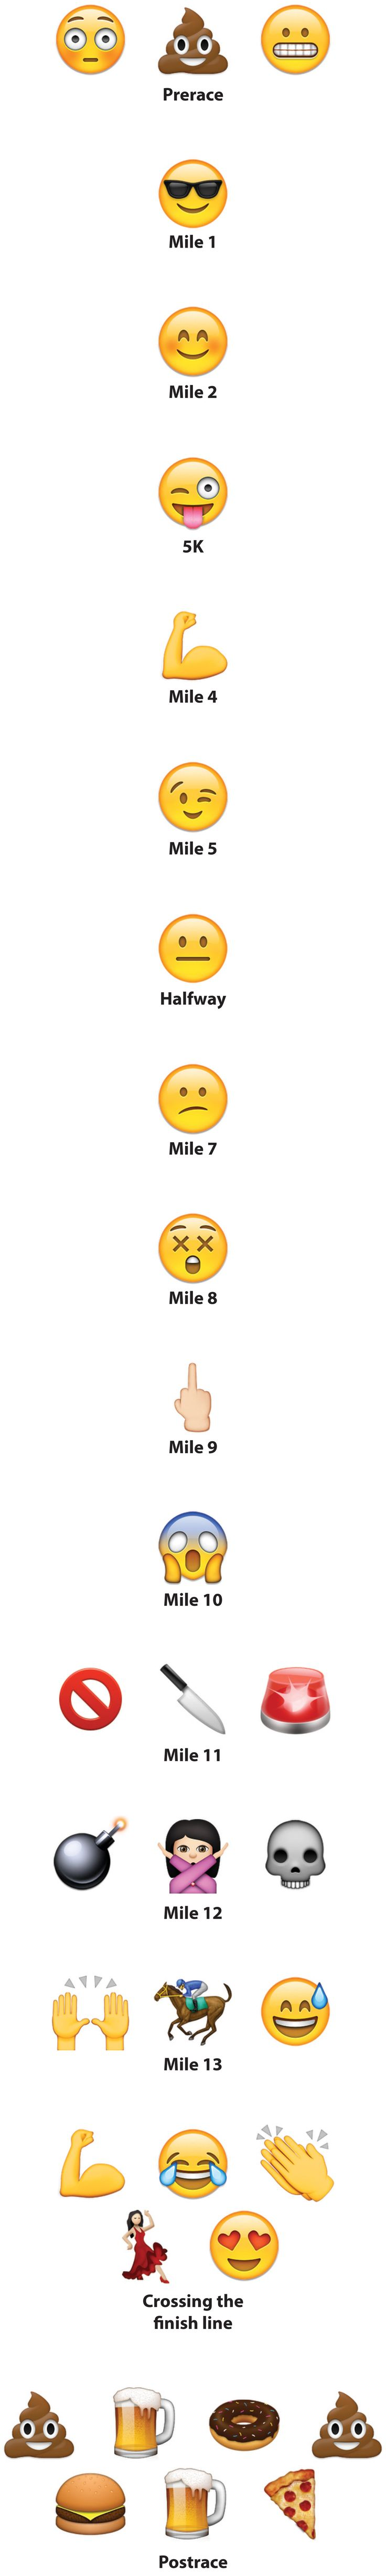 Running a Half Marathon as Told by Emojis  http://www.runnersworld.com/half-marathon/running-a-half-marathon-as-told-by-emojis?cid=soc_Runner's%2520World%2520-%2520RunnersWorld_FBPAGE_Runner%25E2%2580%2599s%2520World__Motivation_HalfMarathonTraining